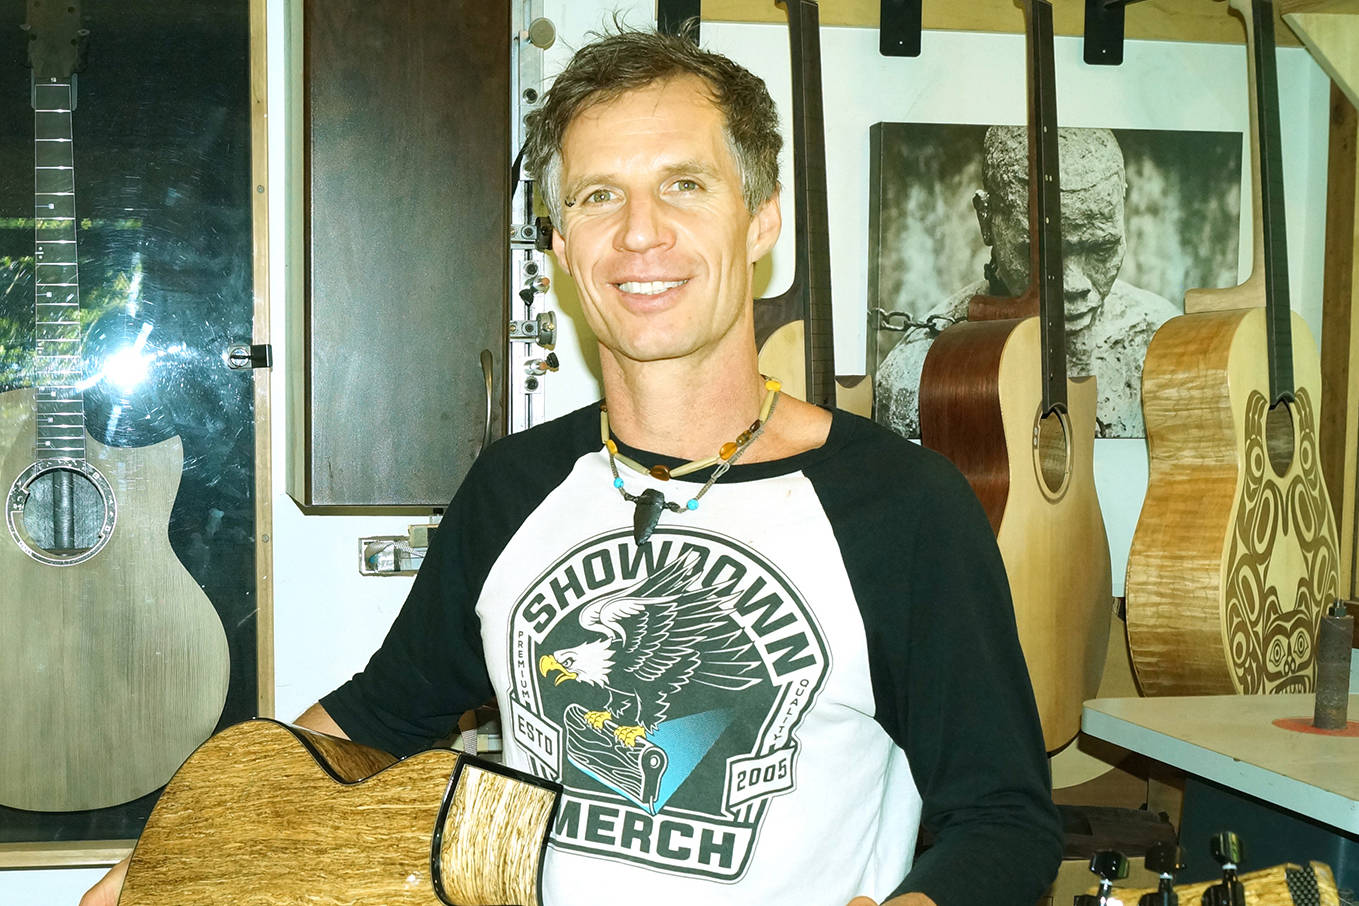 Reuben Forsland in his East Sooke studio with the guitar he crafted from hemp wood that he hopes will start a conversation about sustainability. (Rick Stiebel - Sooke News Mirror)